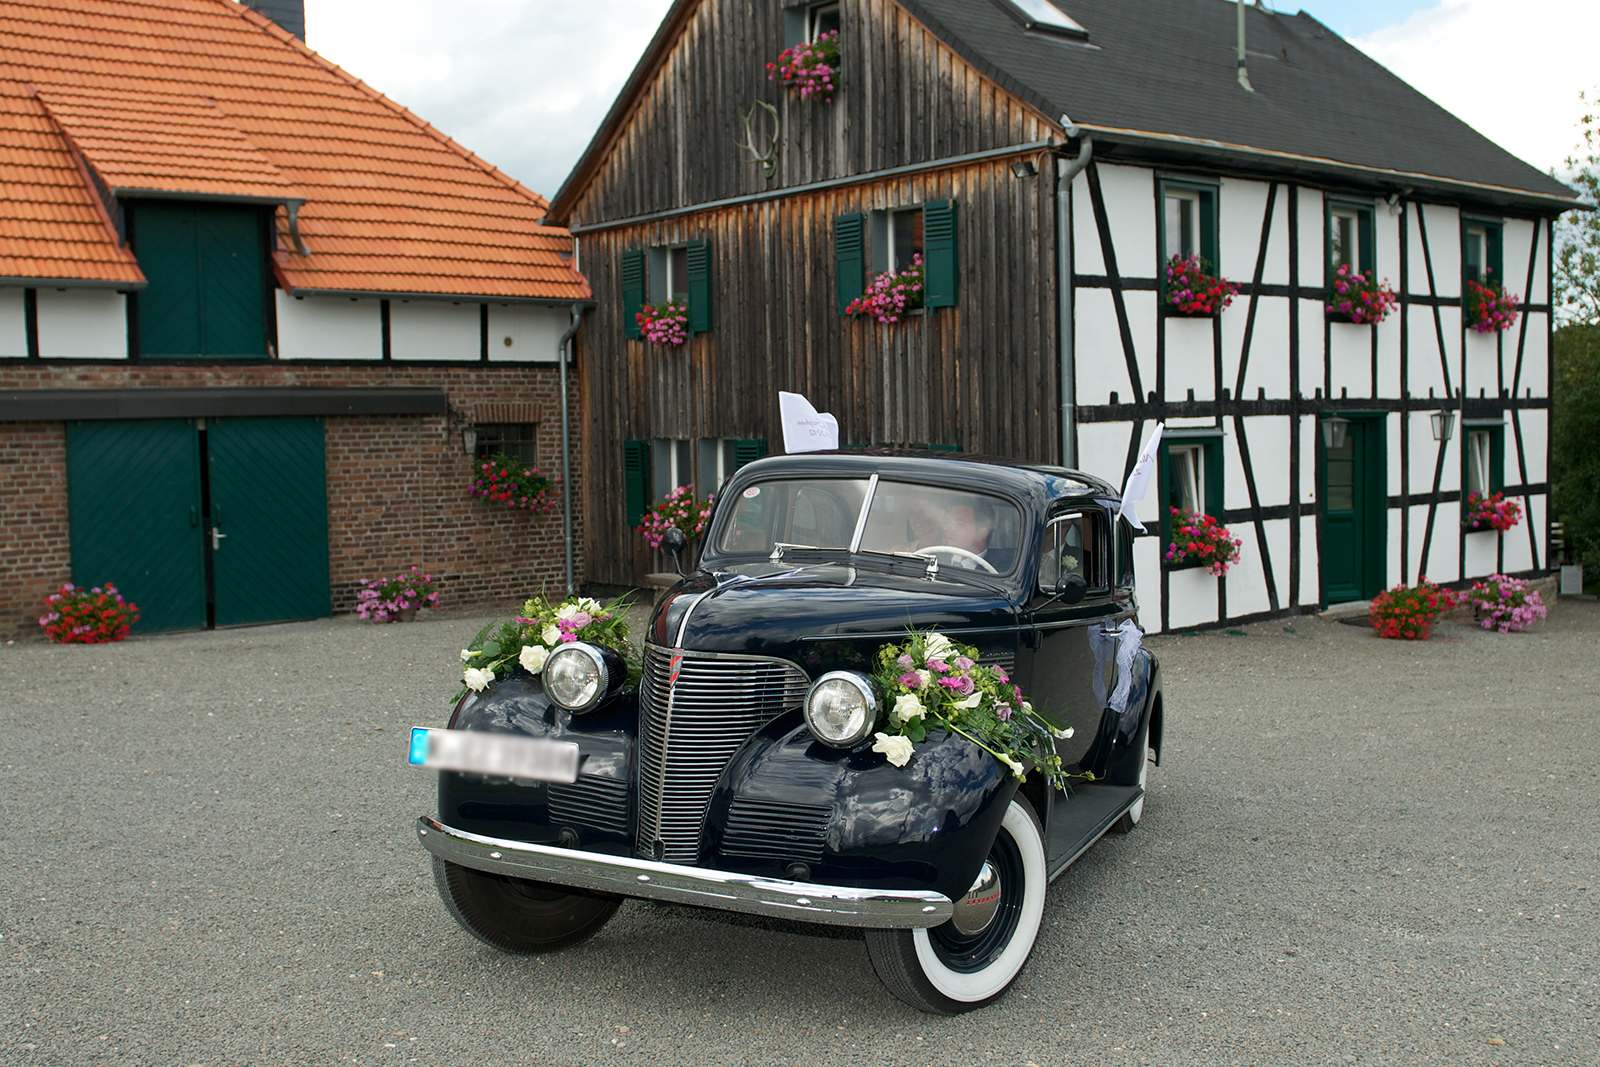 Decorated vintage car for wedding, marriage and wedding in the Bergisches Land